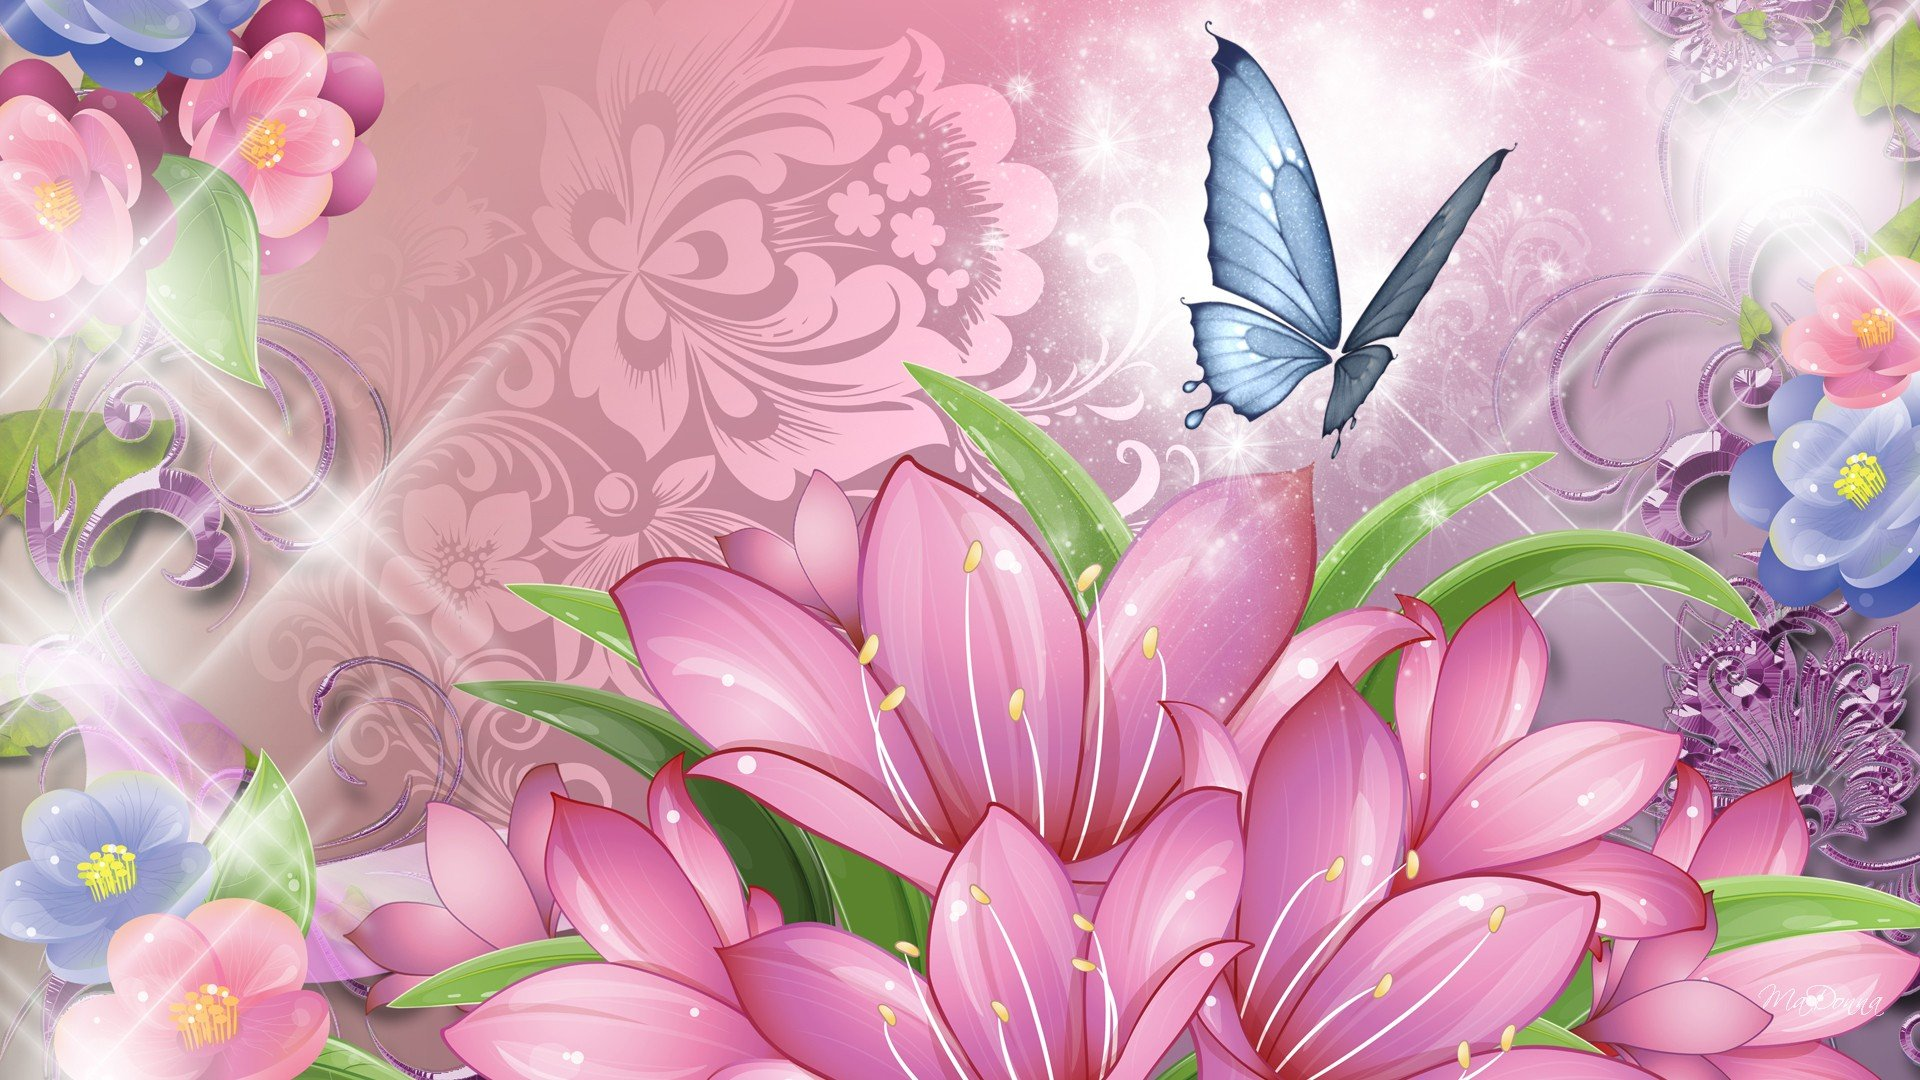 Flowers and Butterfly HD Wallpaper Background Image 1920x1080 1920x1080